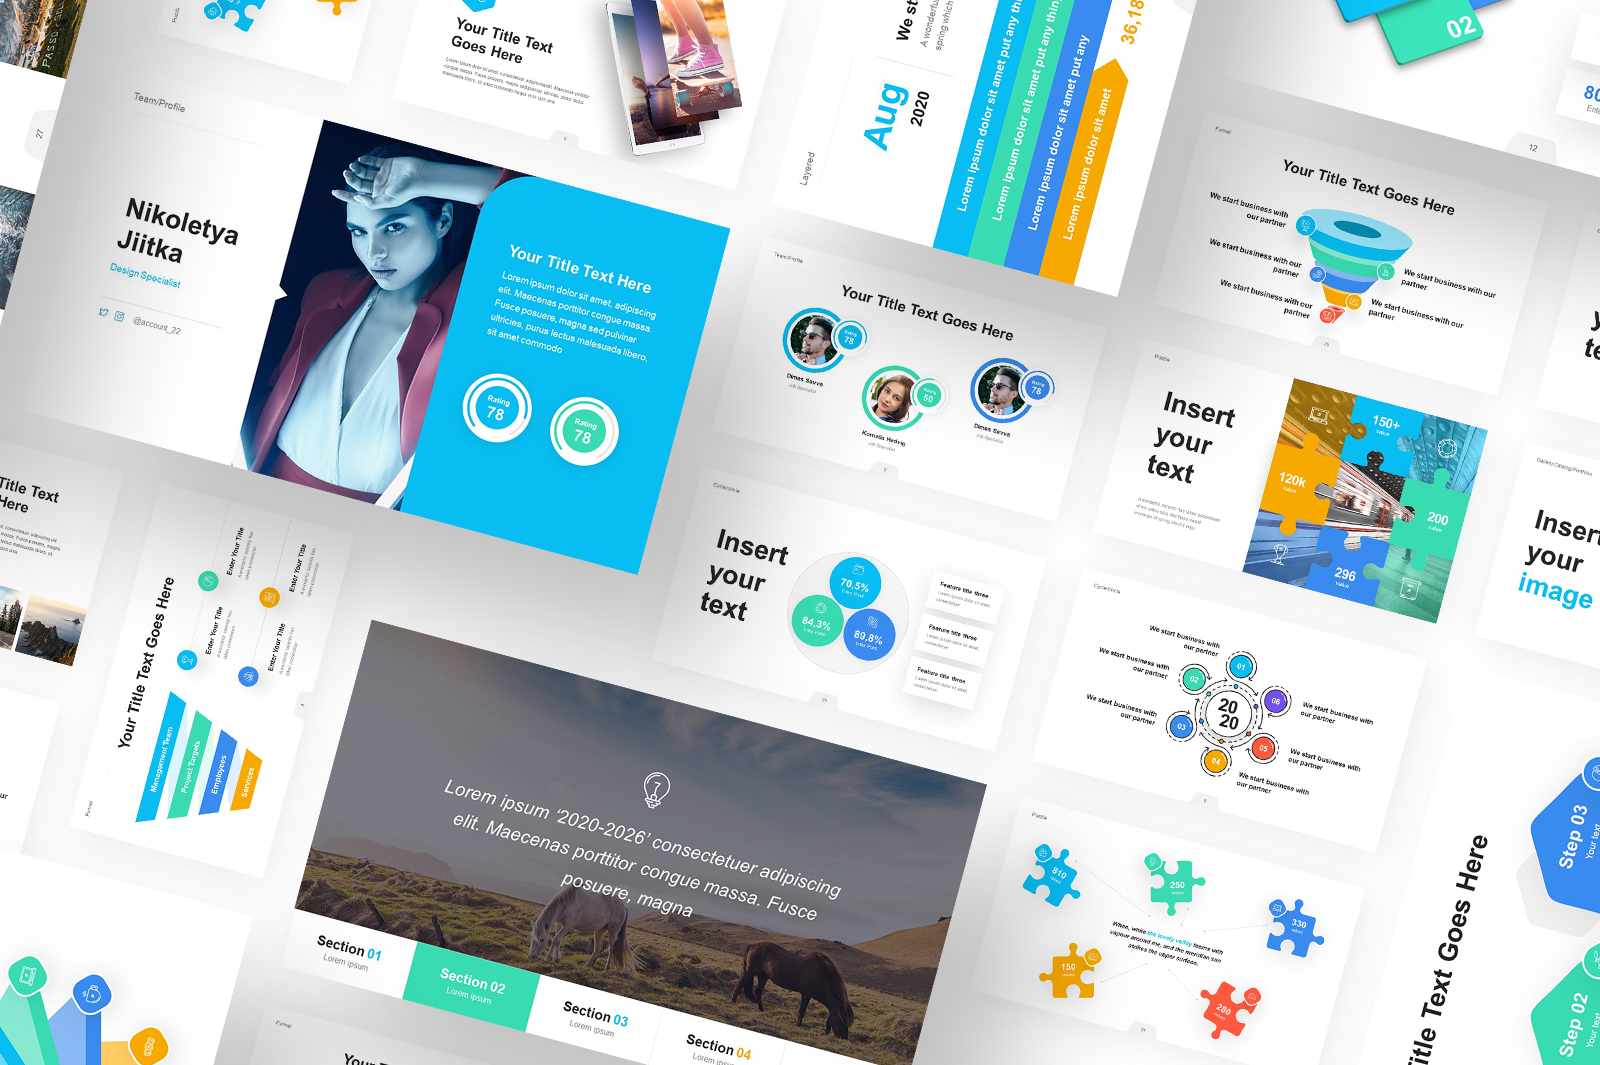 Vectory Infographic Asset Pack PowerPoint Template